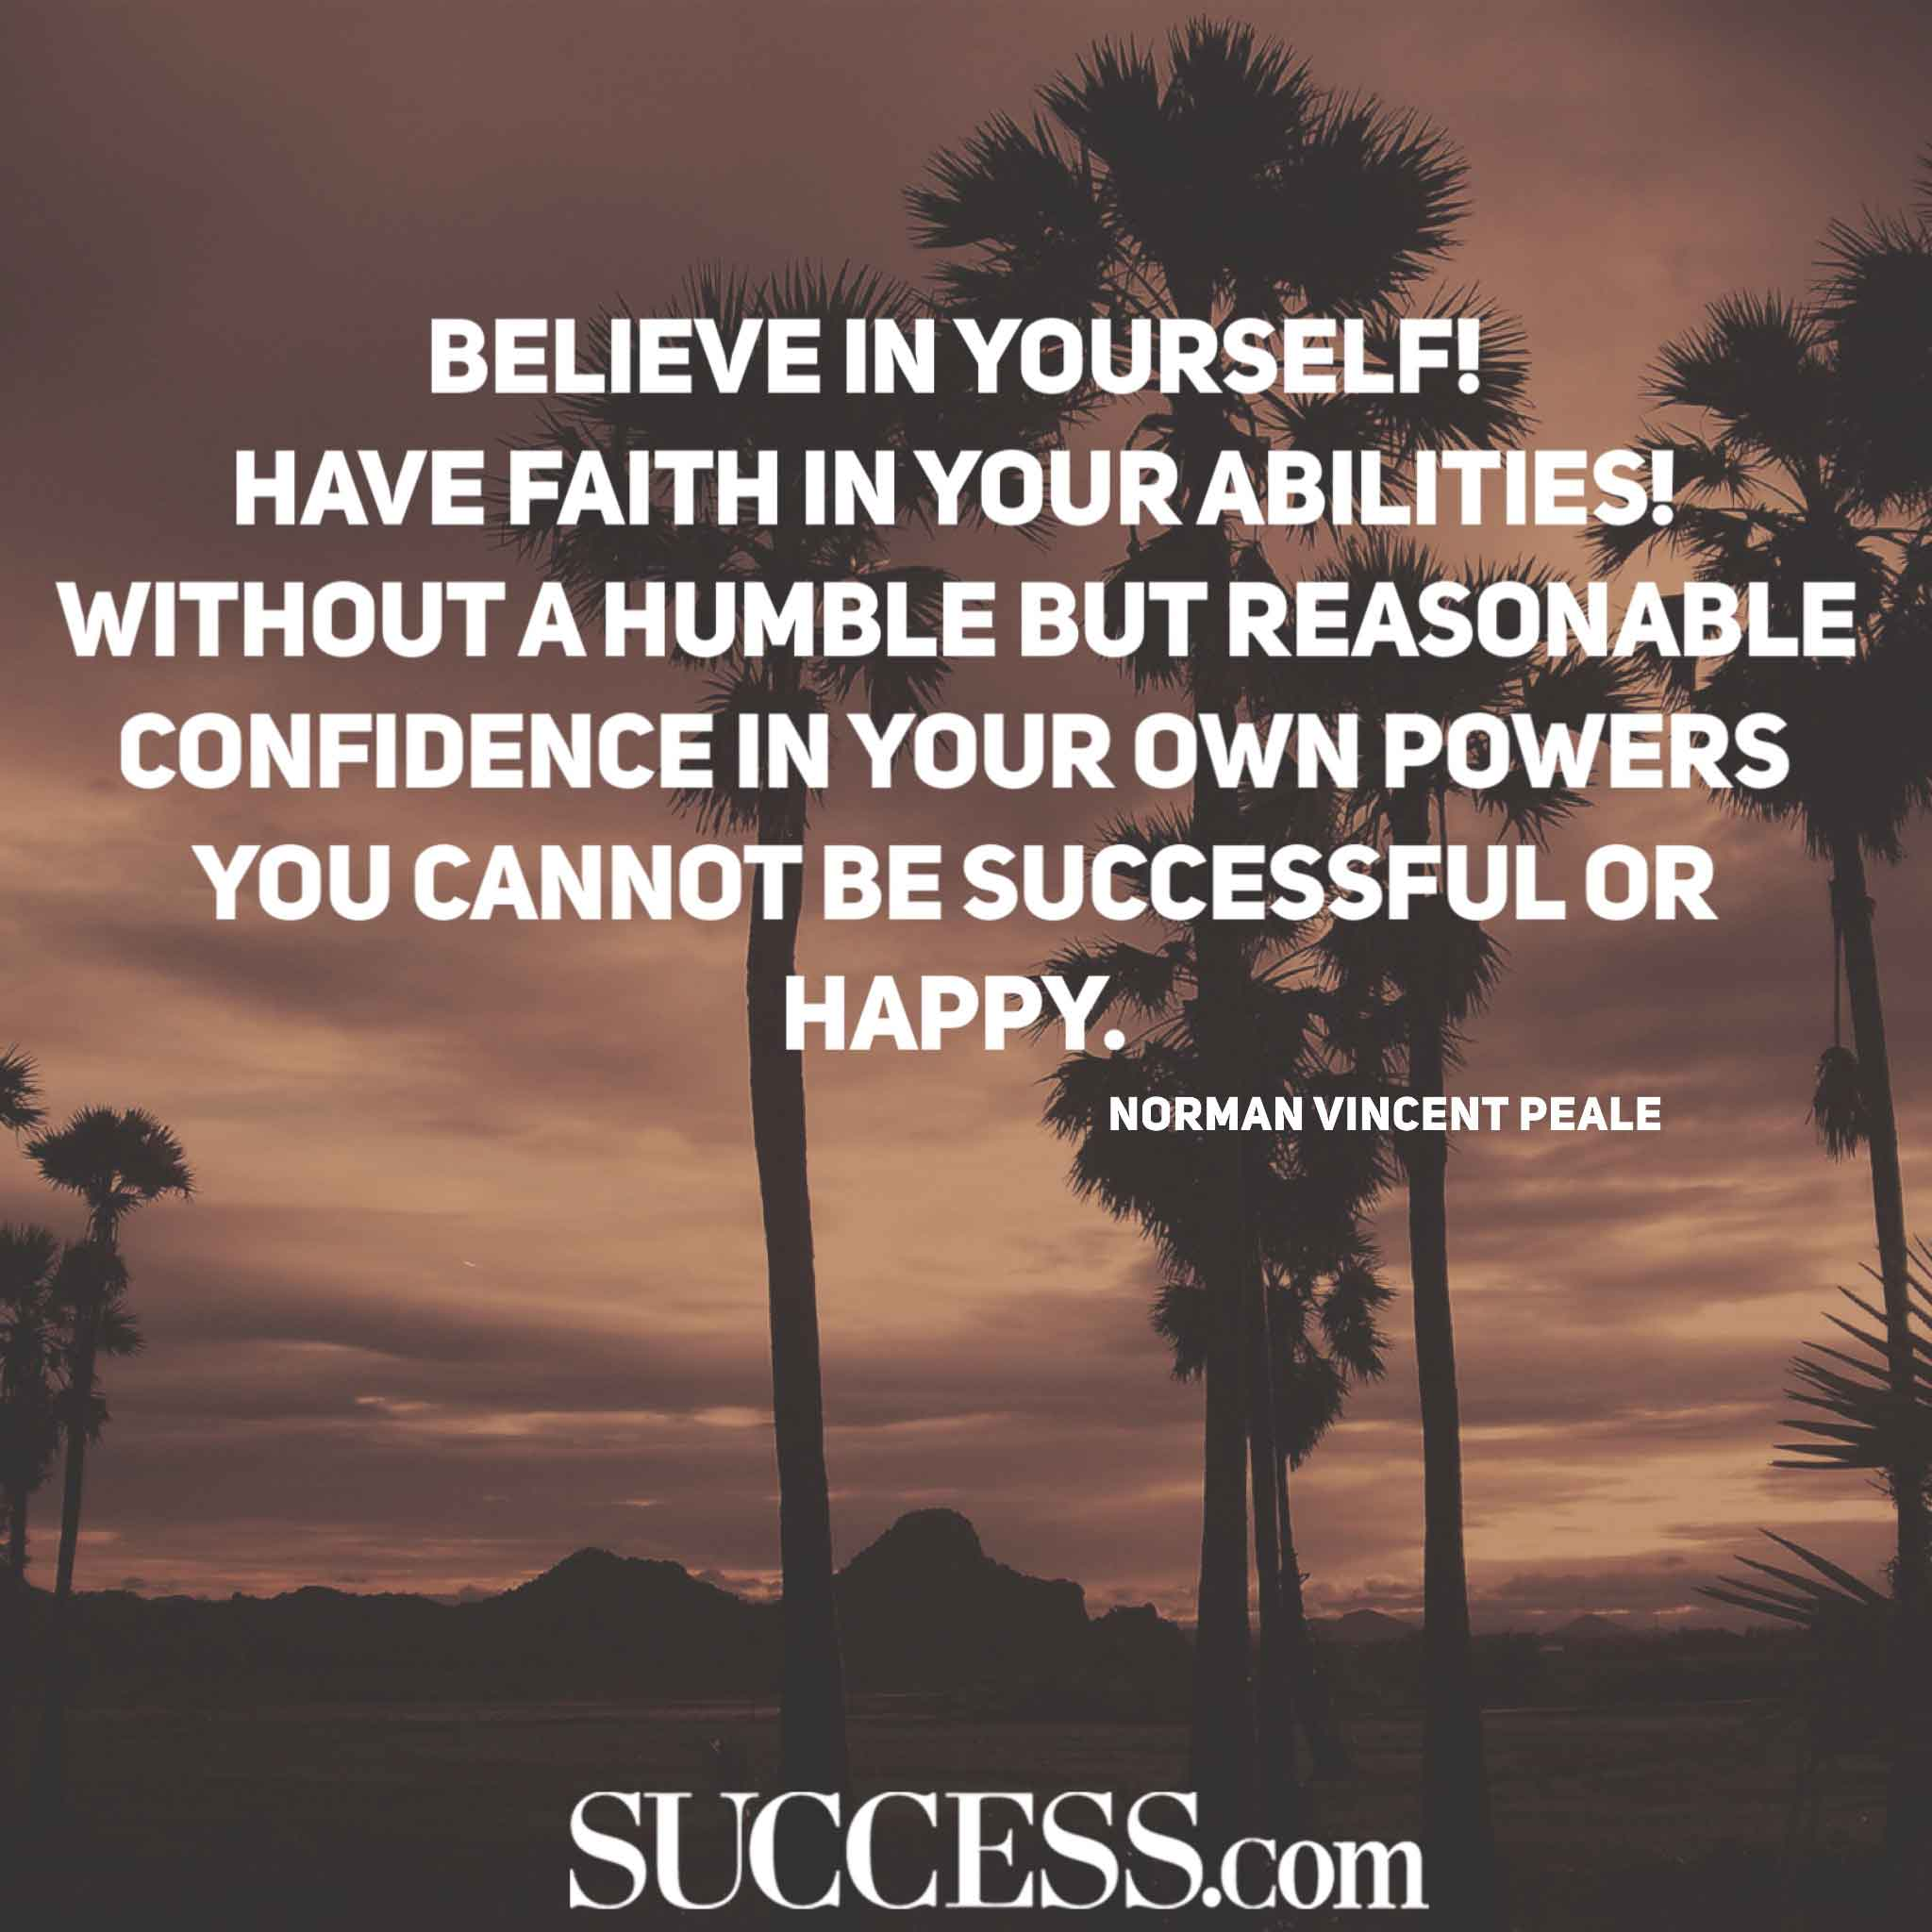 Image of: Strong Success Magazine 17 Motivational Quotes To Help You Achieve Your Dreams